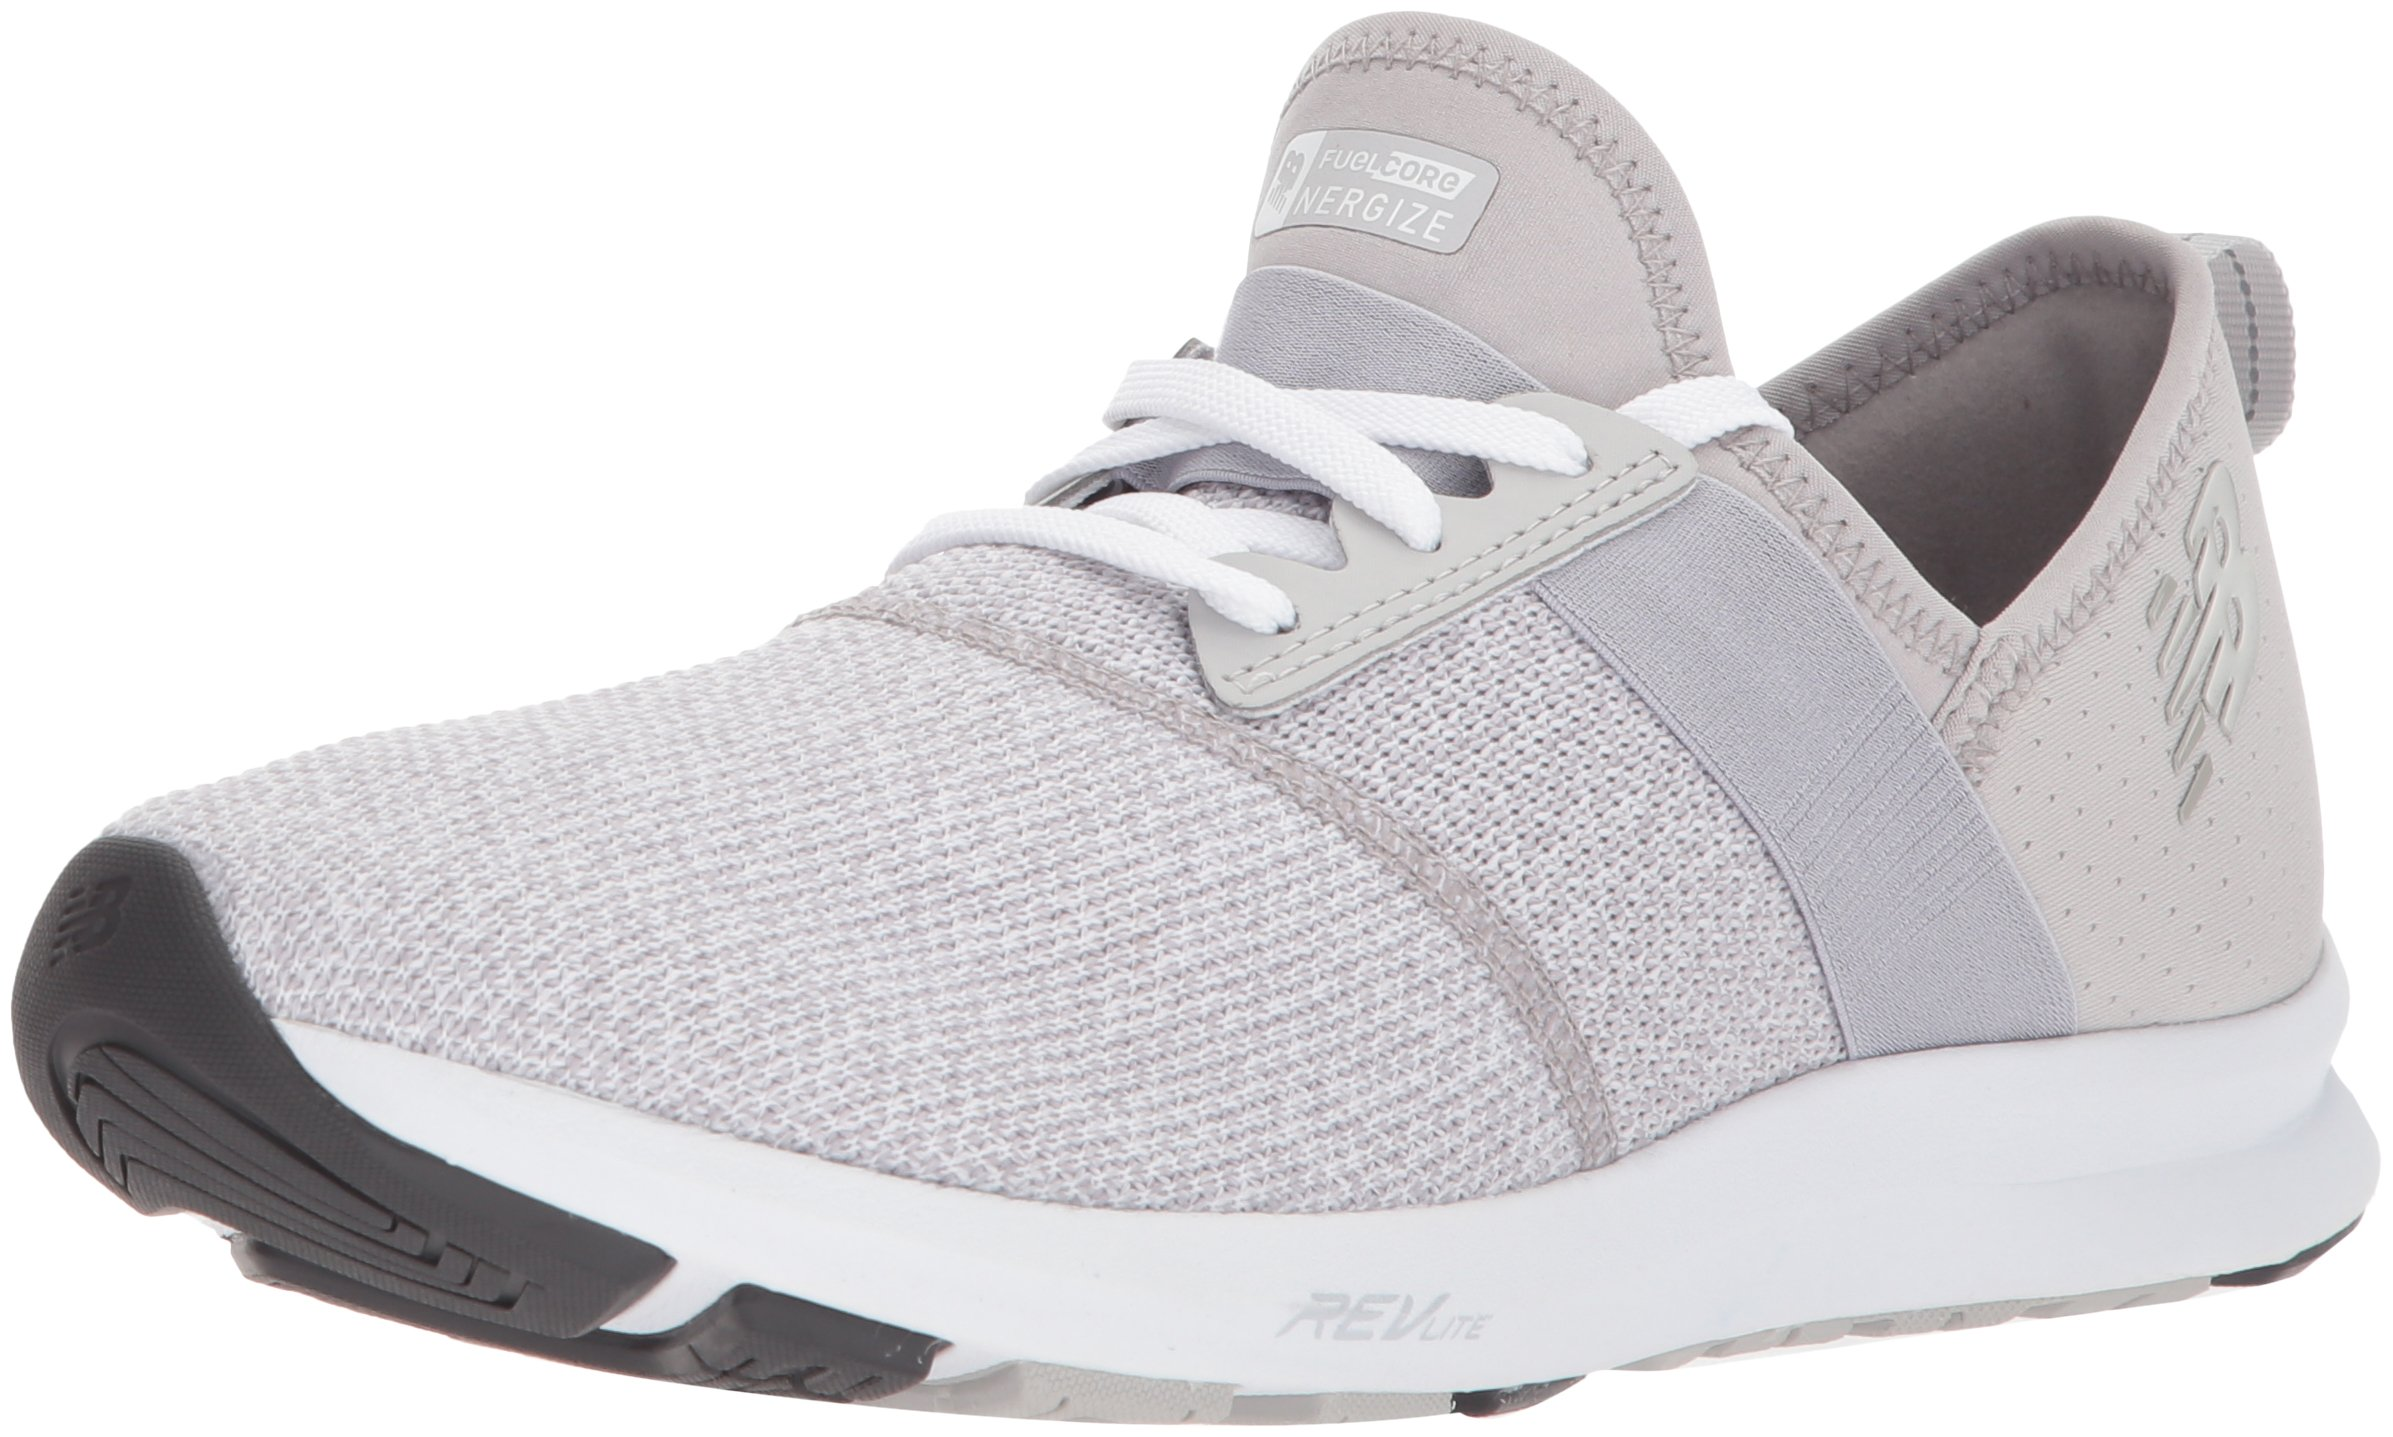 New Balance Women's FuelCore Nergize v1 FuelCore Training Shoe, Light Grey, 5 B US